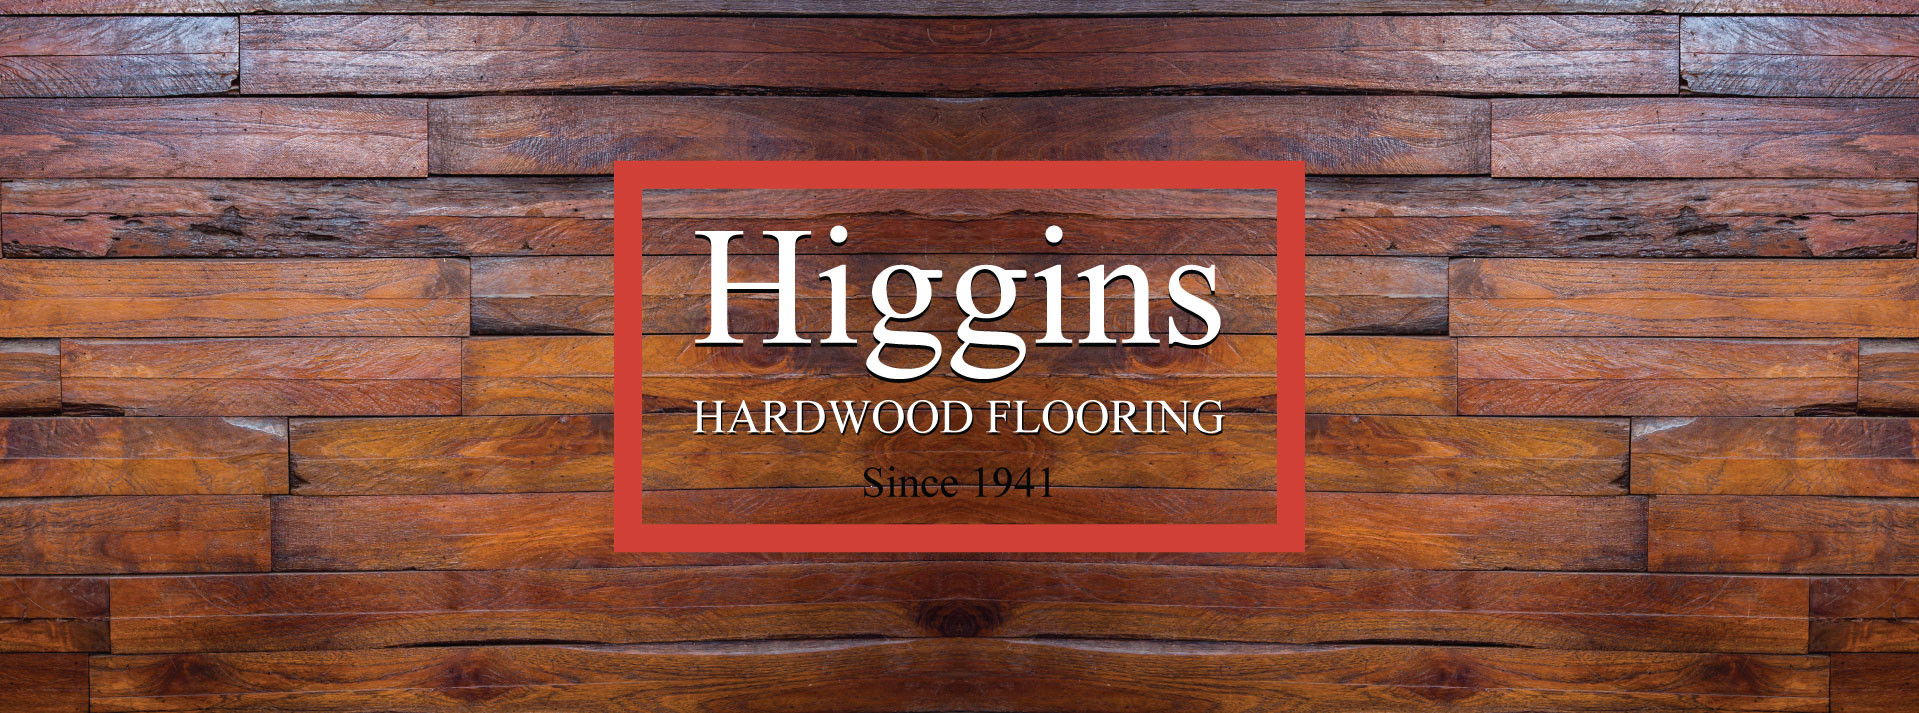 decorative hardwood floor borders of higgins hardwood flooring in peterborough oshawa lindsay ajax inside office hours